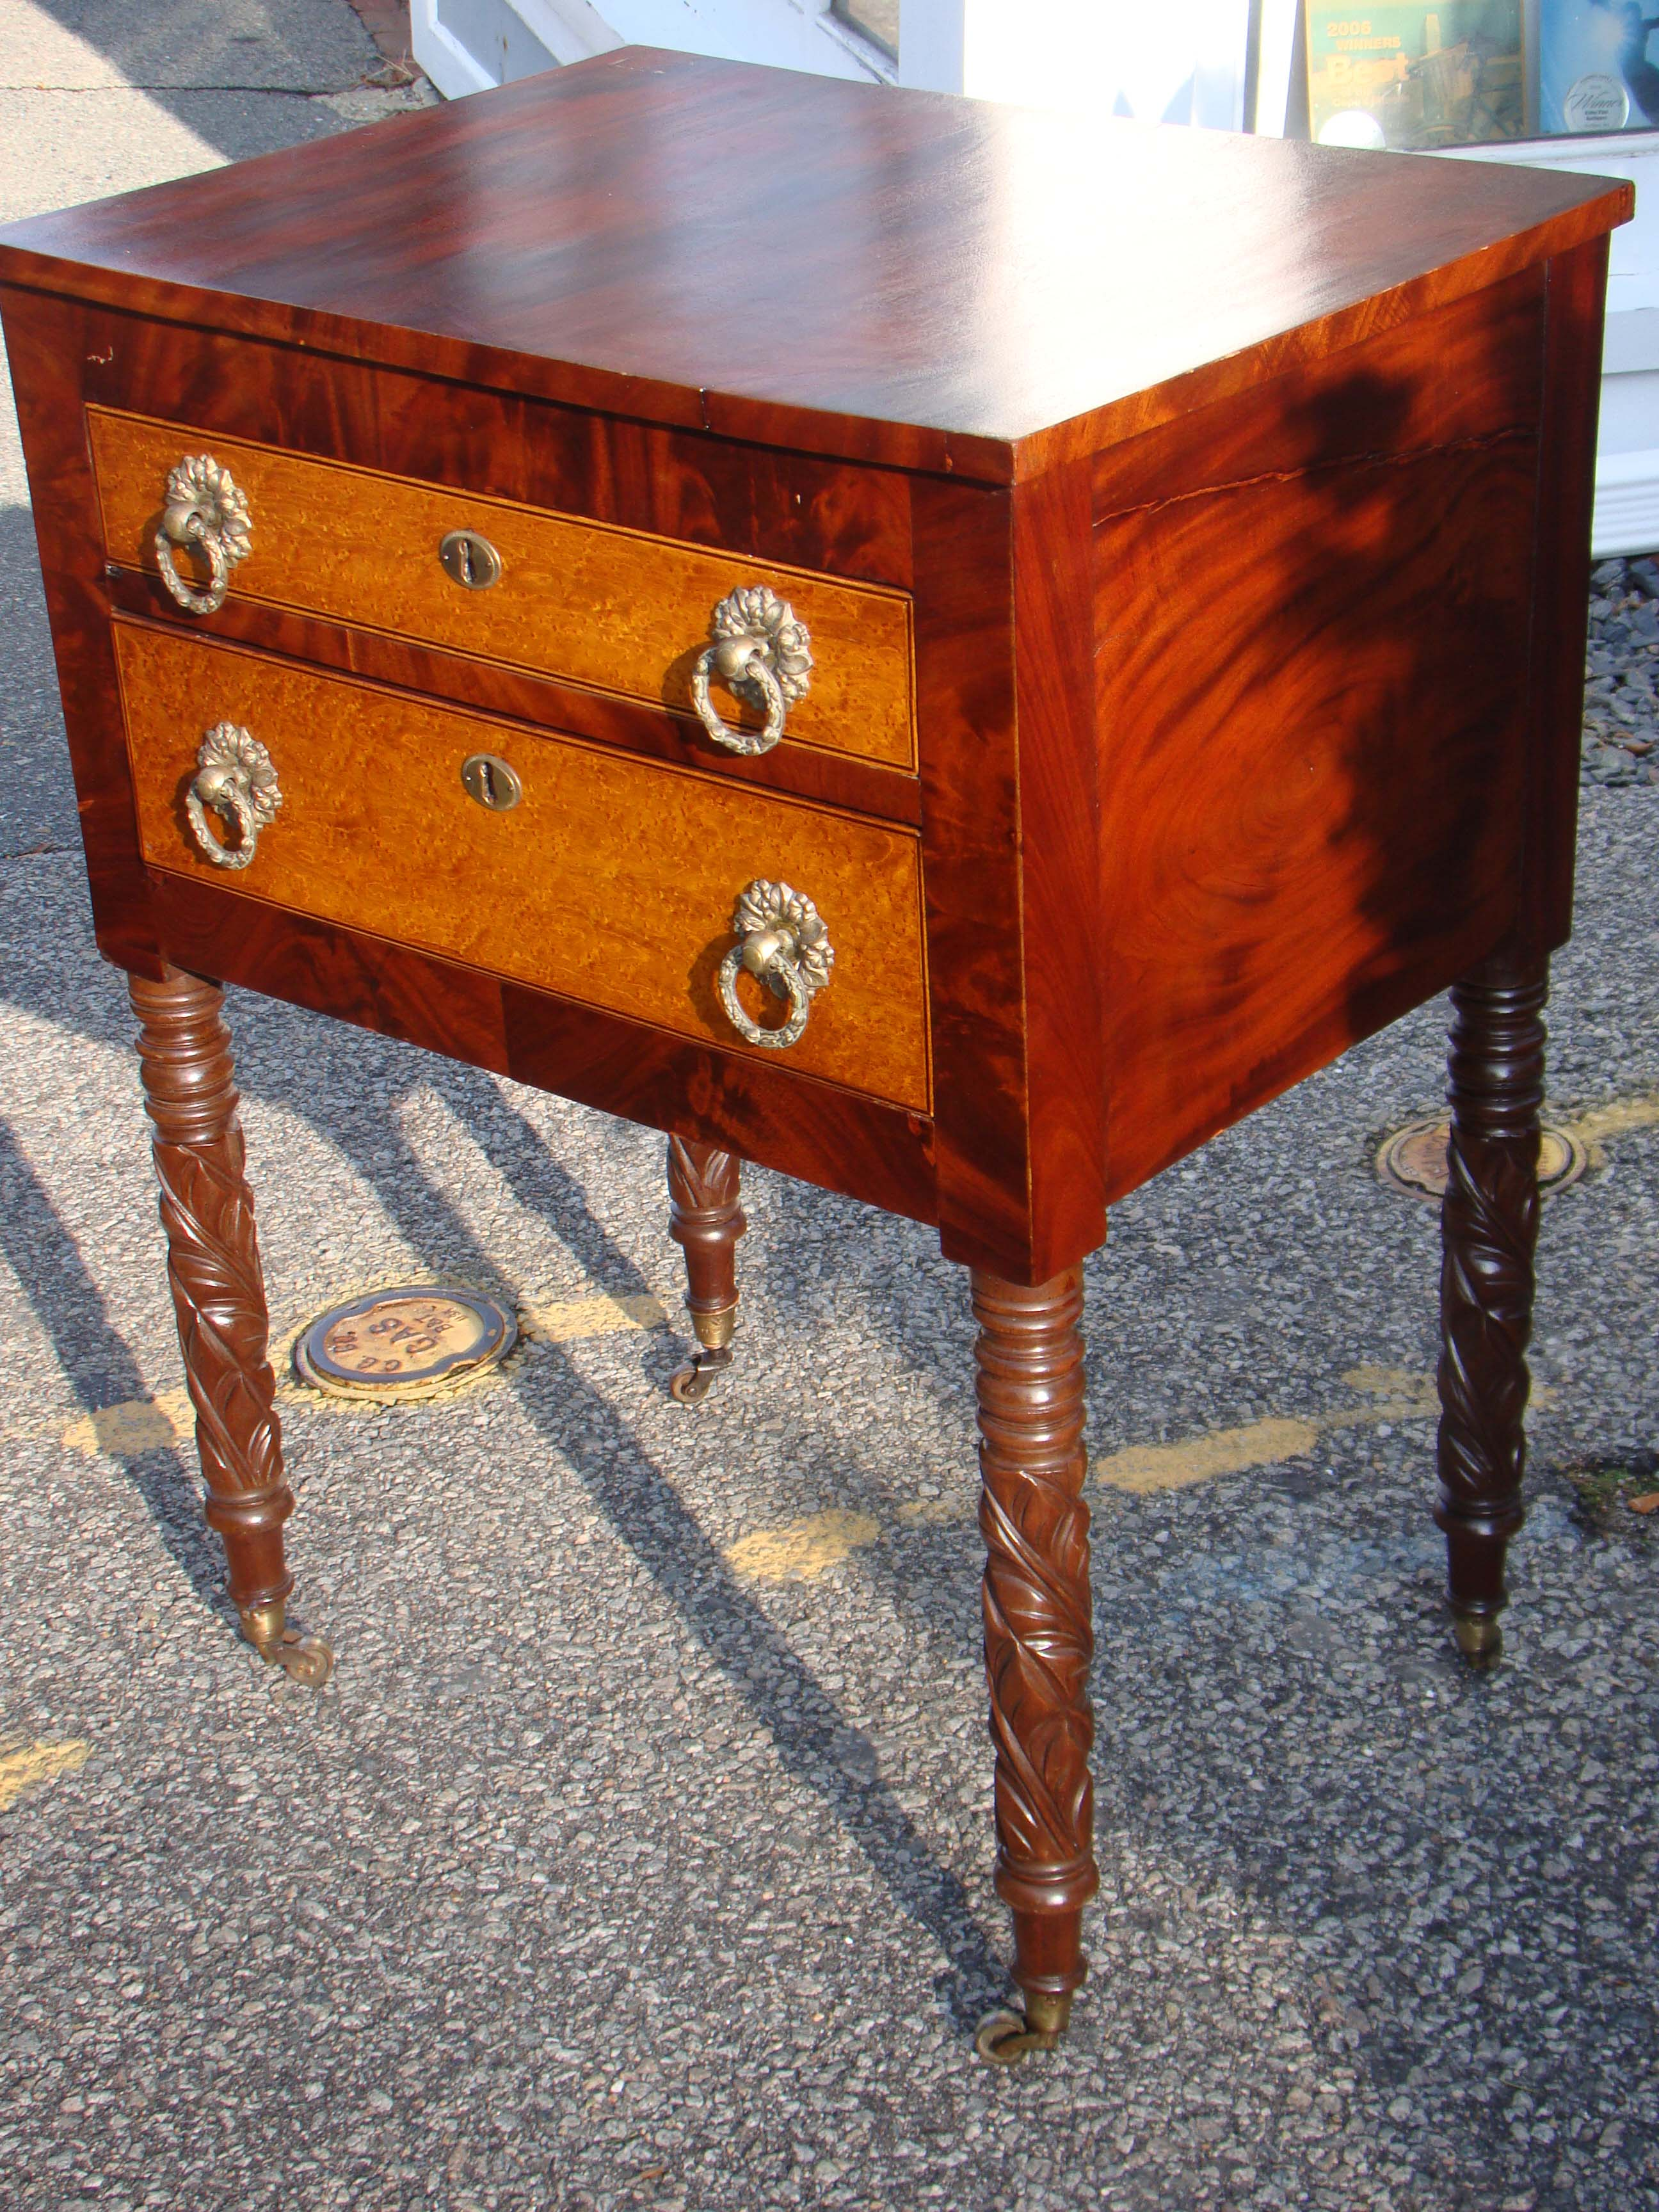 click to view larger image of A fine Sheraton two-drawer stand circa 1825